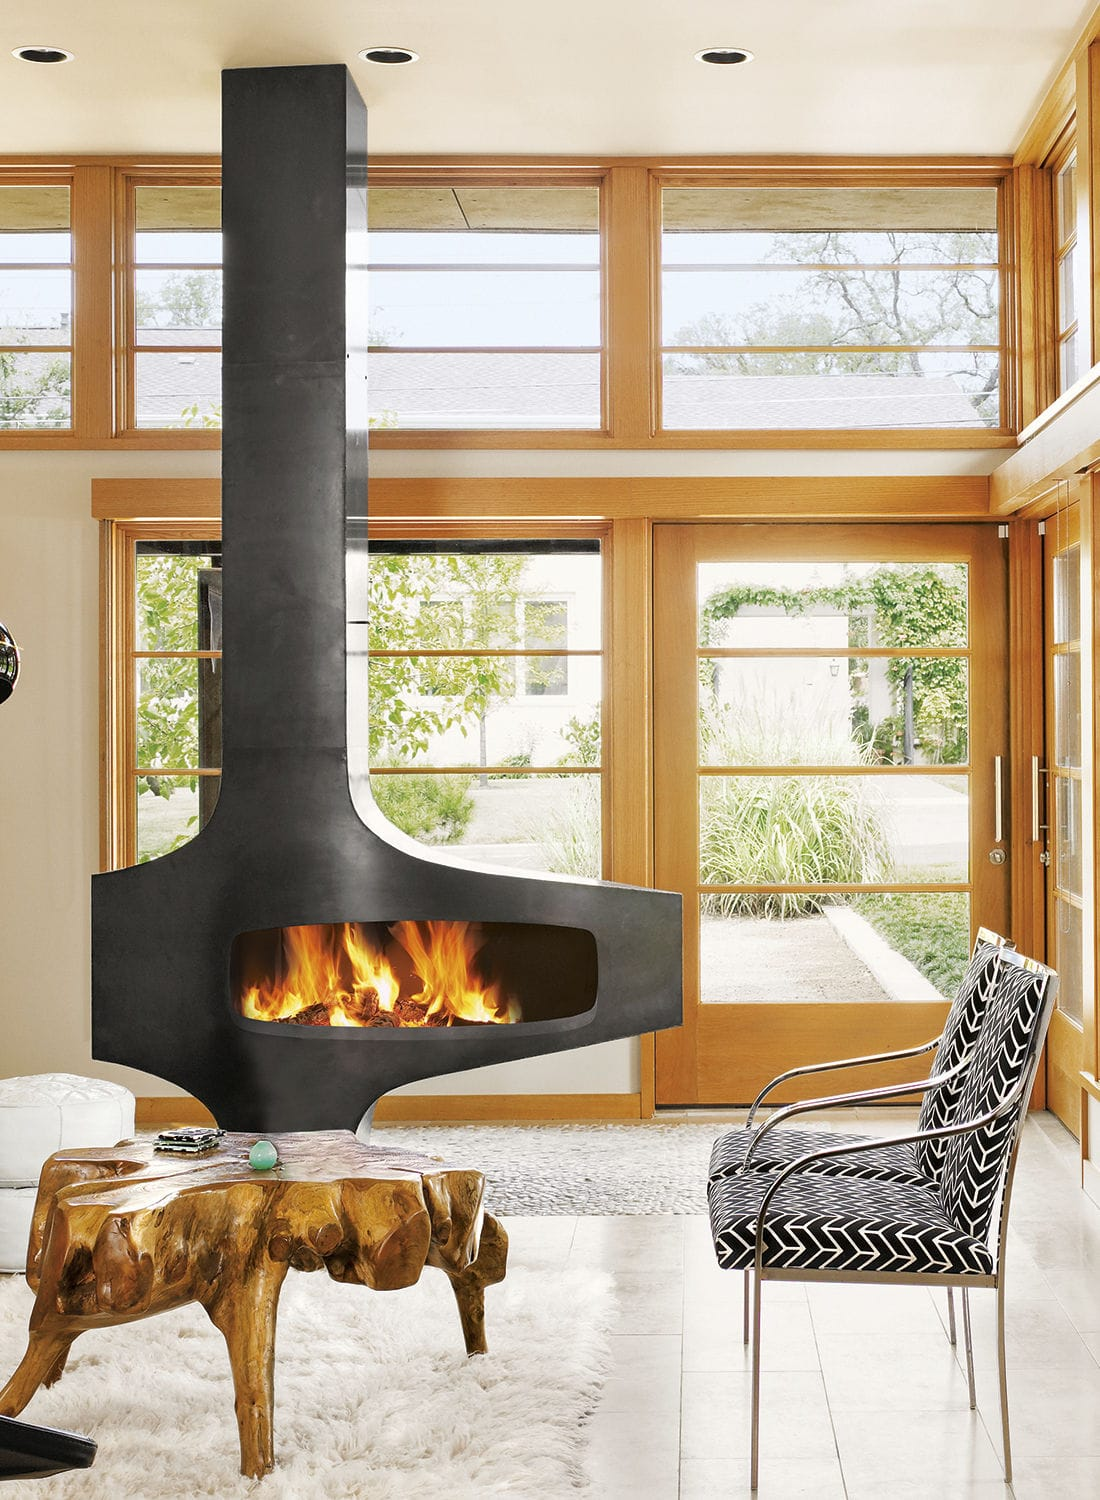 Wood Burning Fireplace Heterofocus 1400 European Home Contemporary Open Hearth Floor Mounted